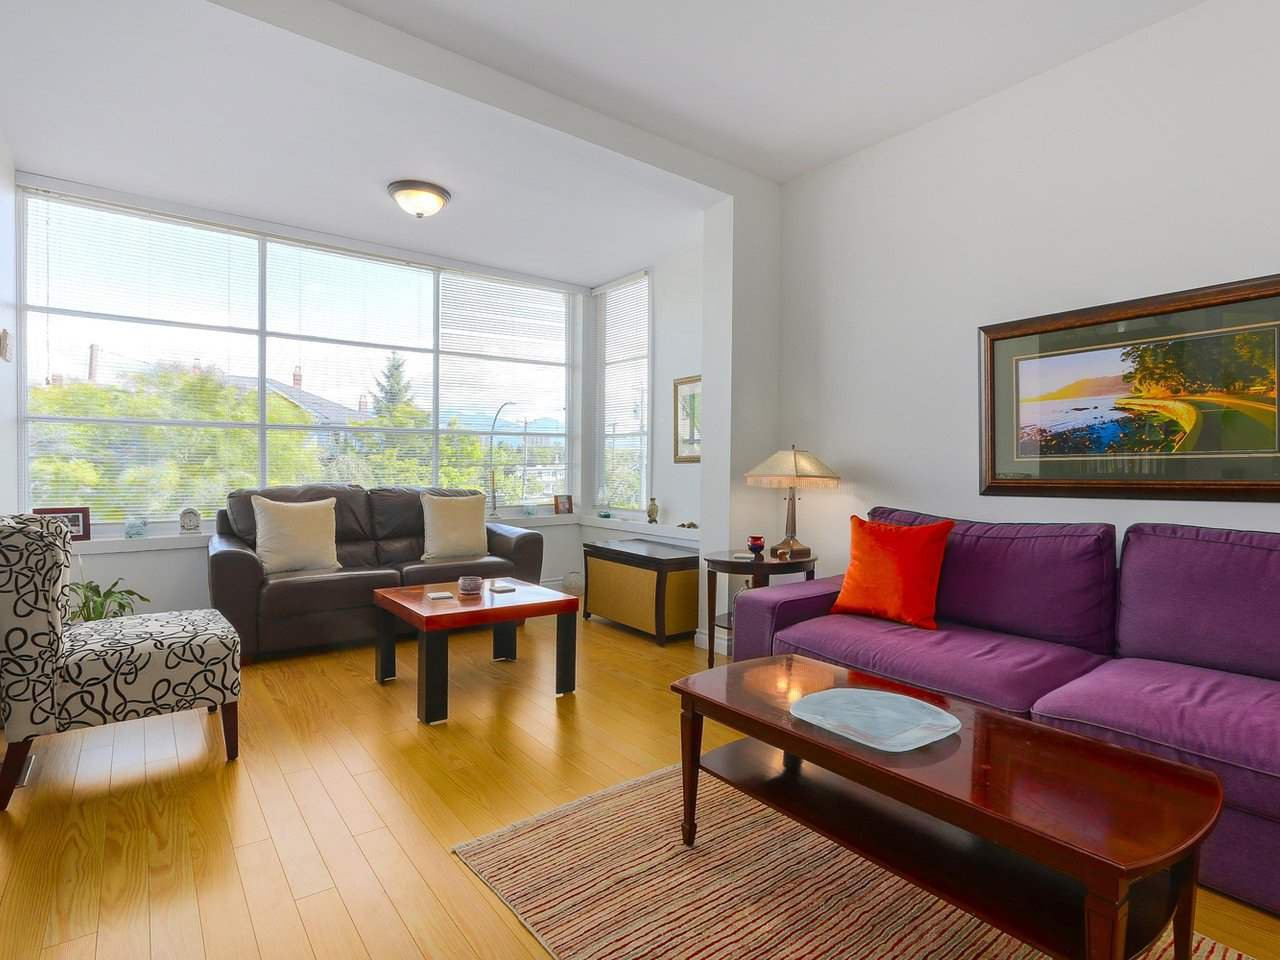 """Photo 2: Photos: 2610 W 10TH Avenue in Vancouver: Kitsilano House for sale in """"Kitsilano"""" (Vancouver West)  : MLS®# R2471992"""